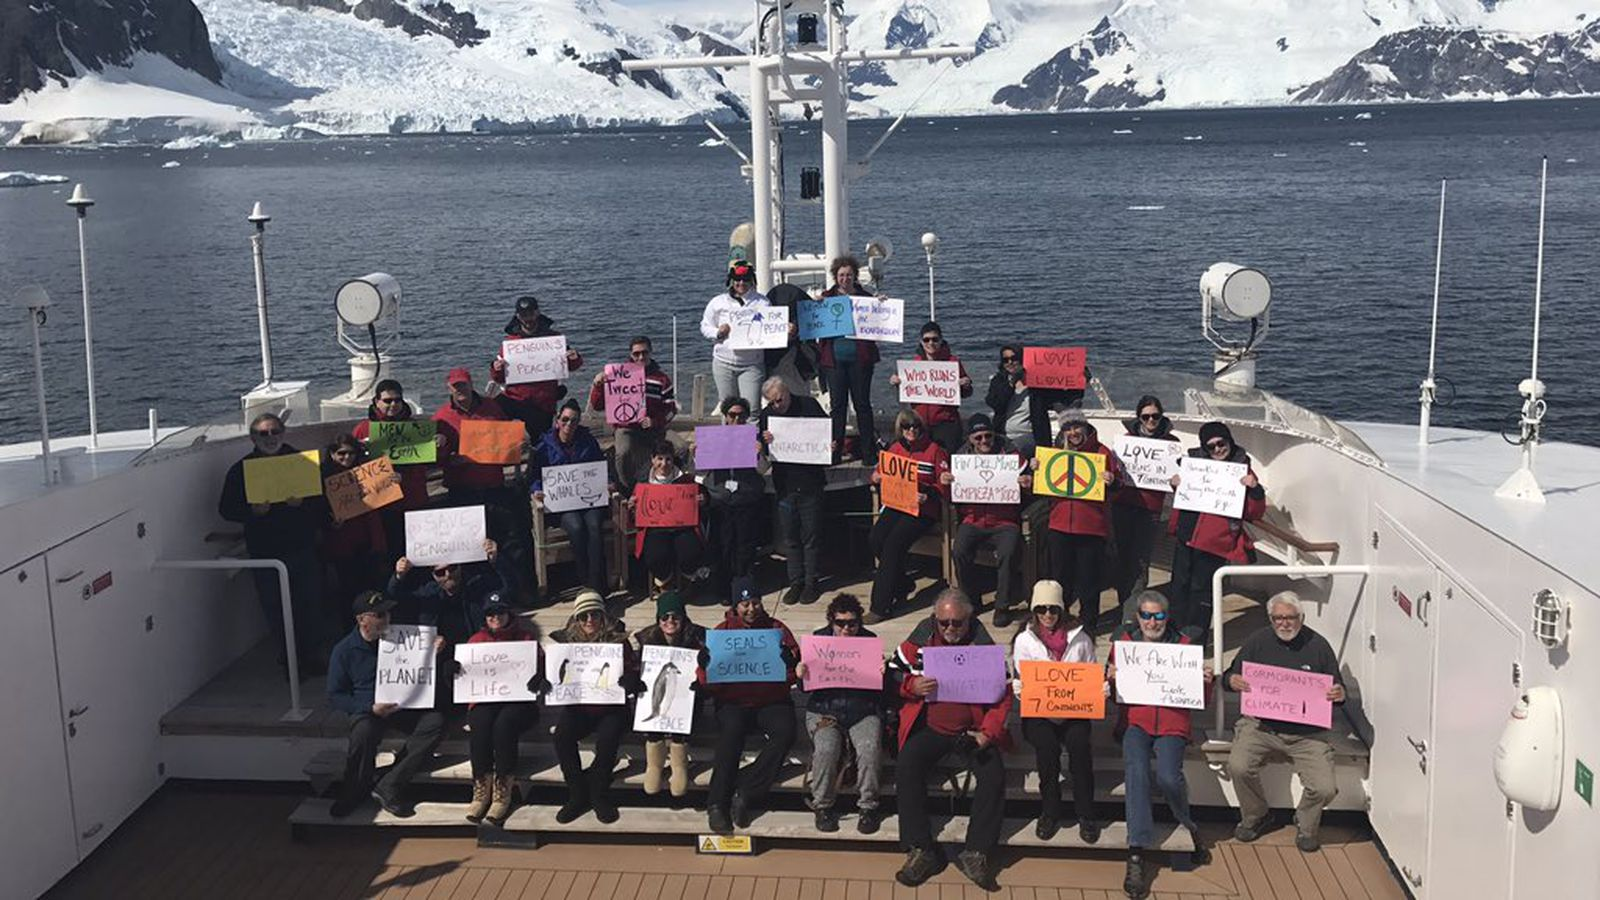 theverge.com - Andrew Liptak - The Women's March movement is taking place on every continent, even Antarctica